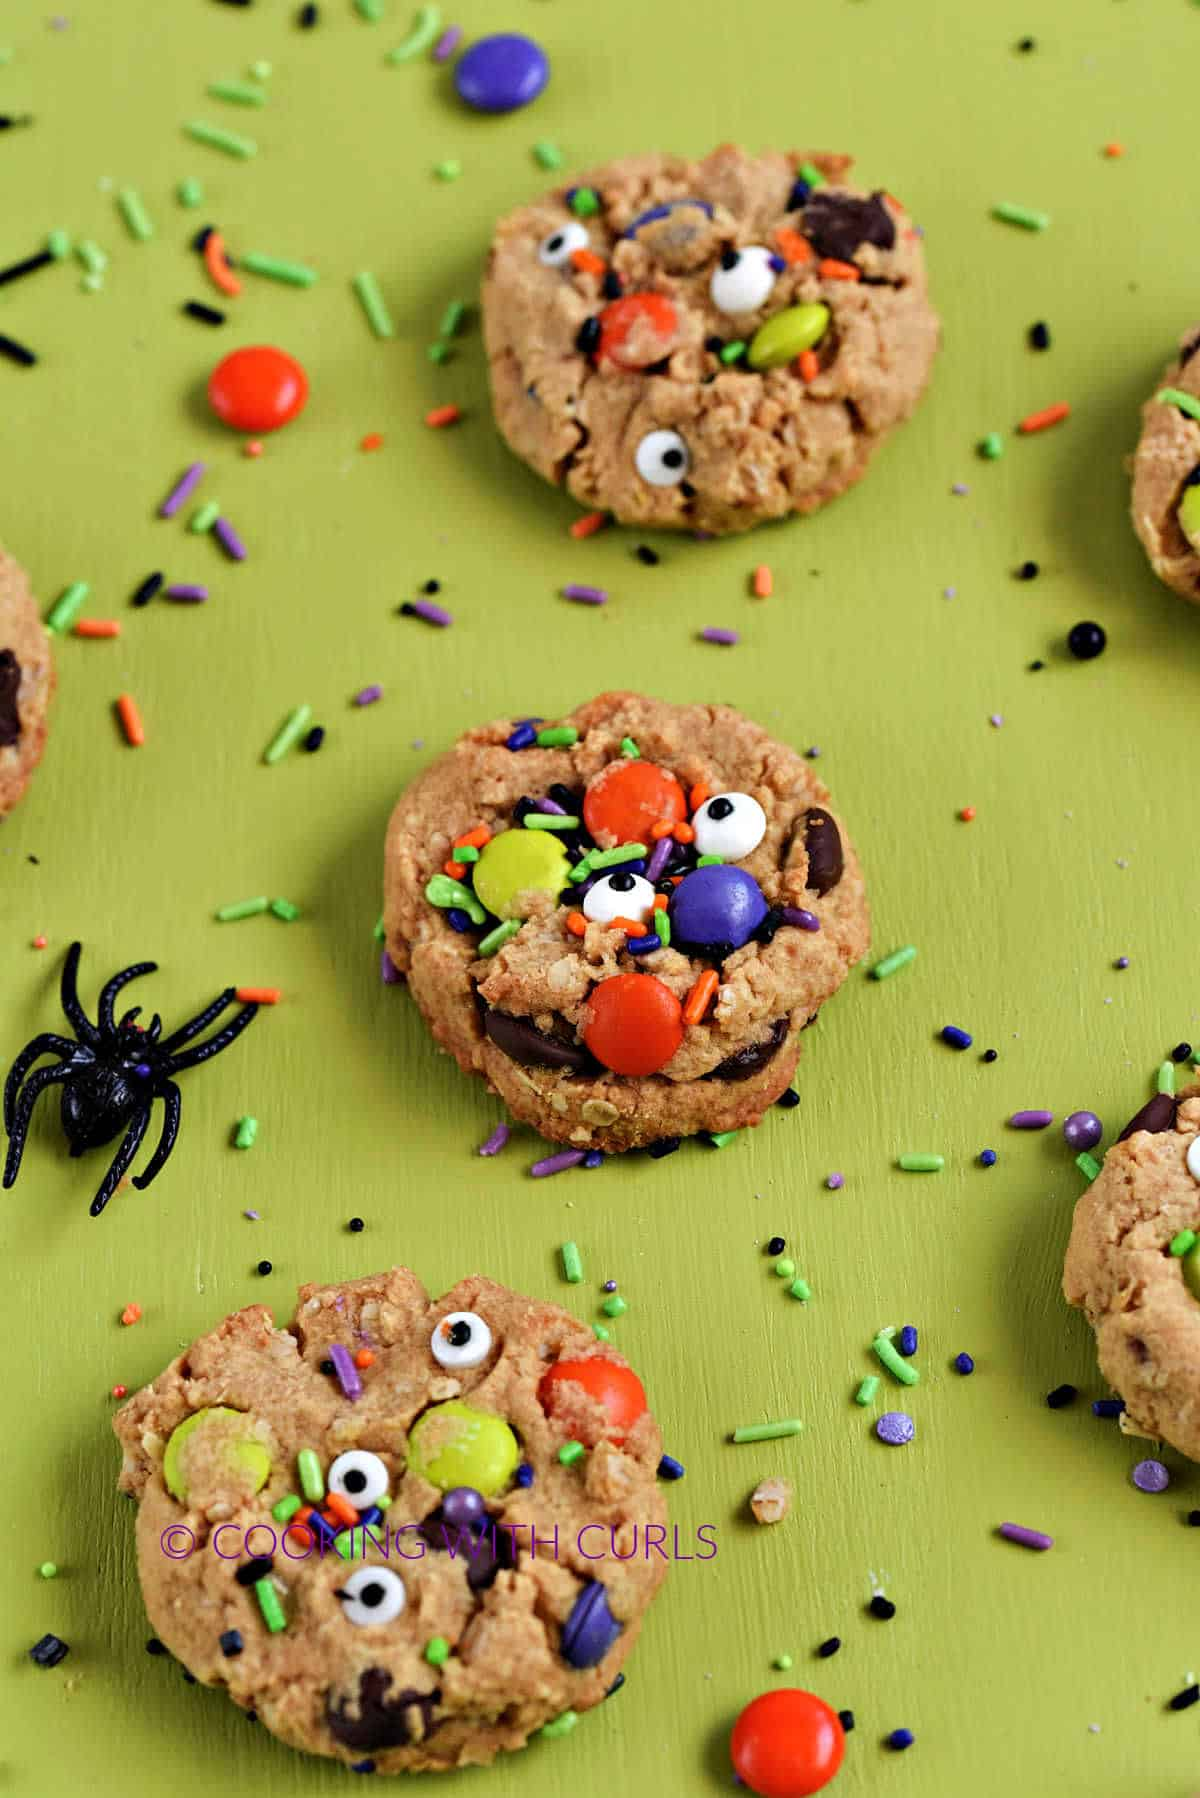 Six cookies with green, orange, and purple M&M's and sprinkles on a green board surrounded by sprinkles.